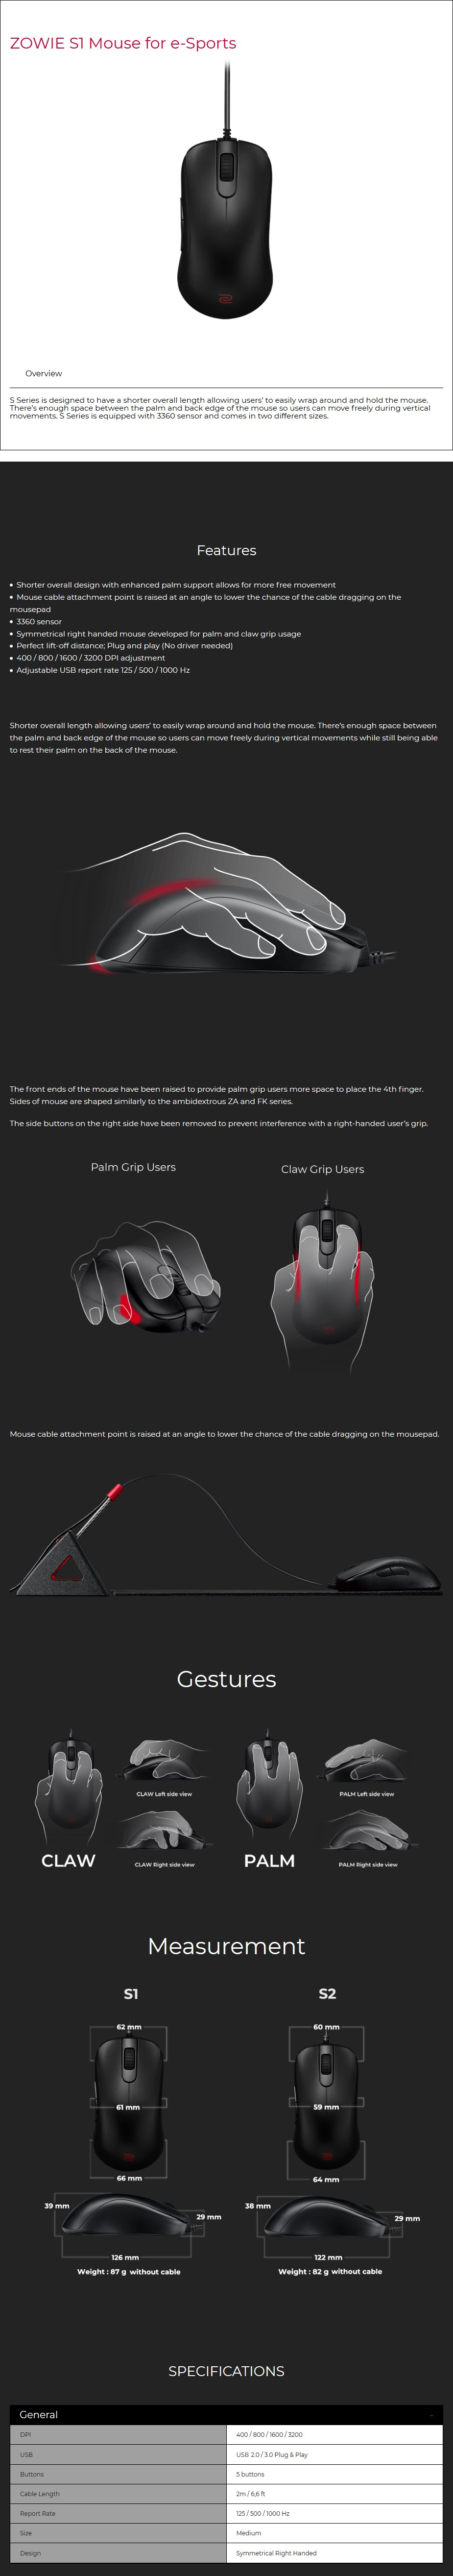 BenQ Zowie S1 Gaming Mouse - Overview 1